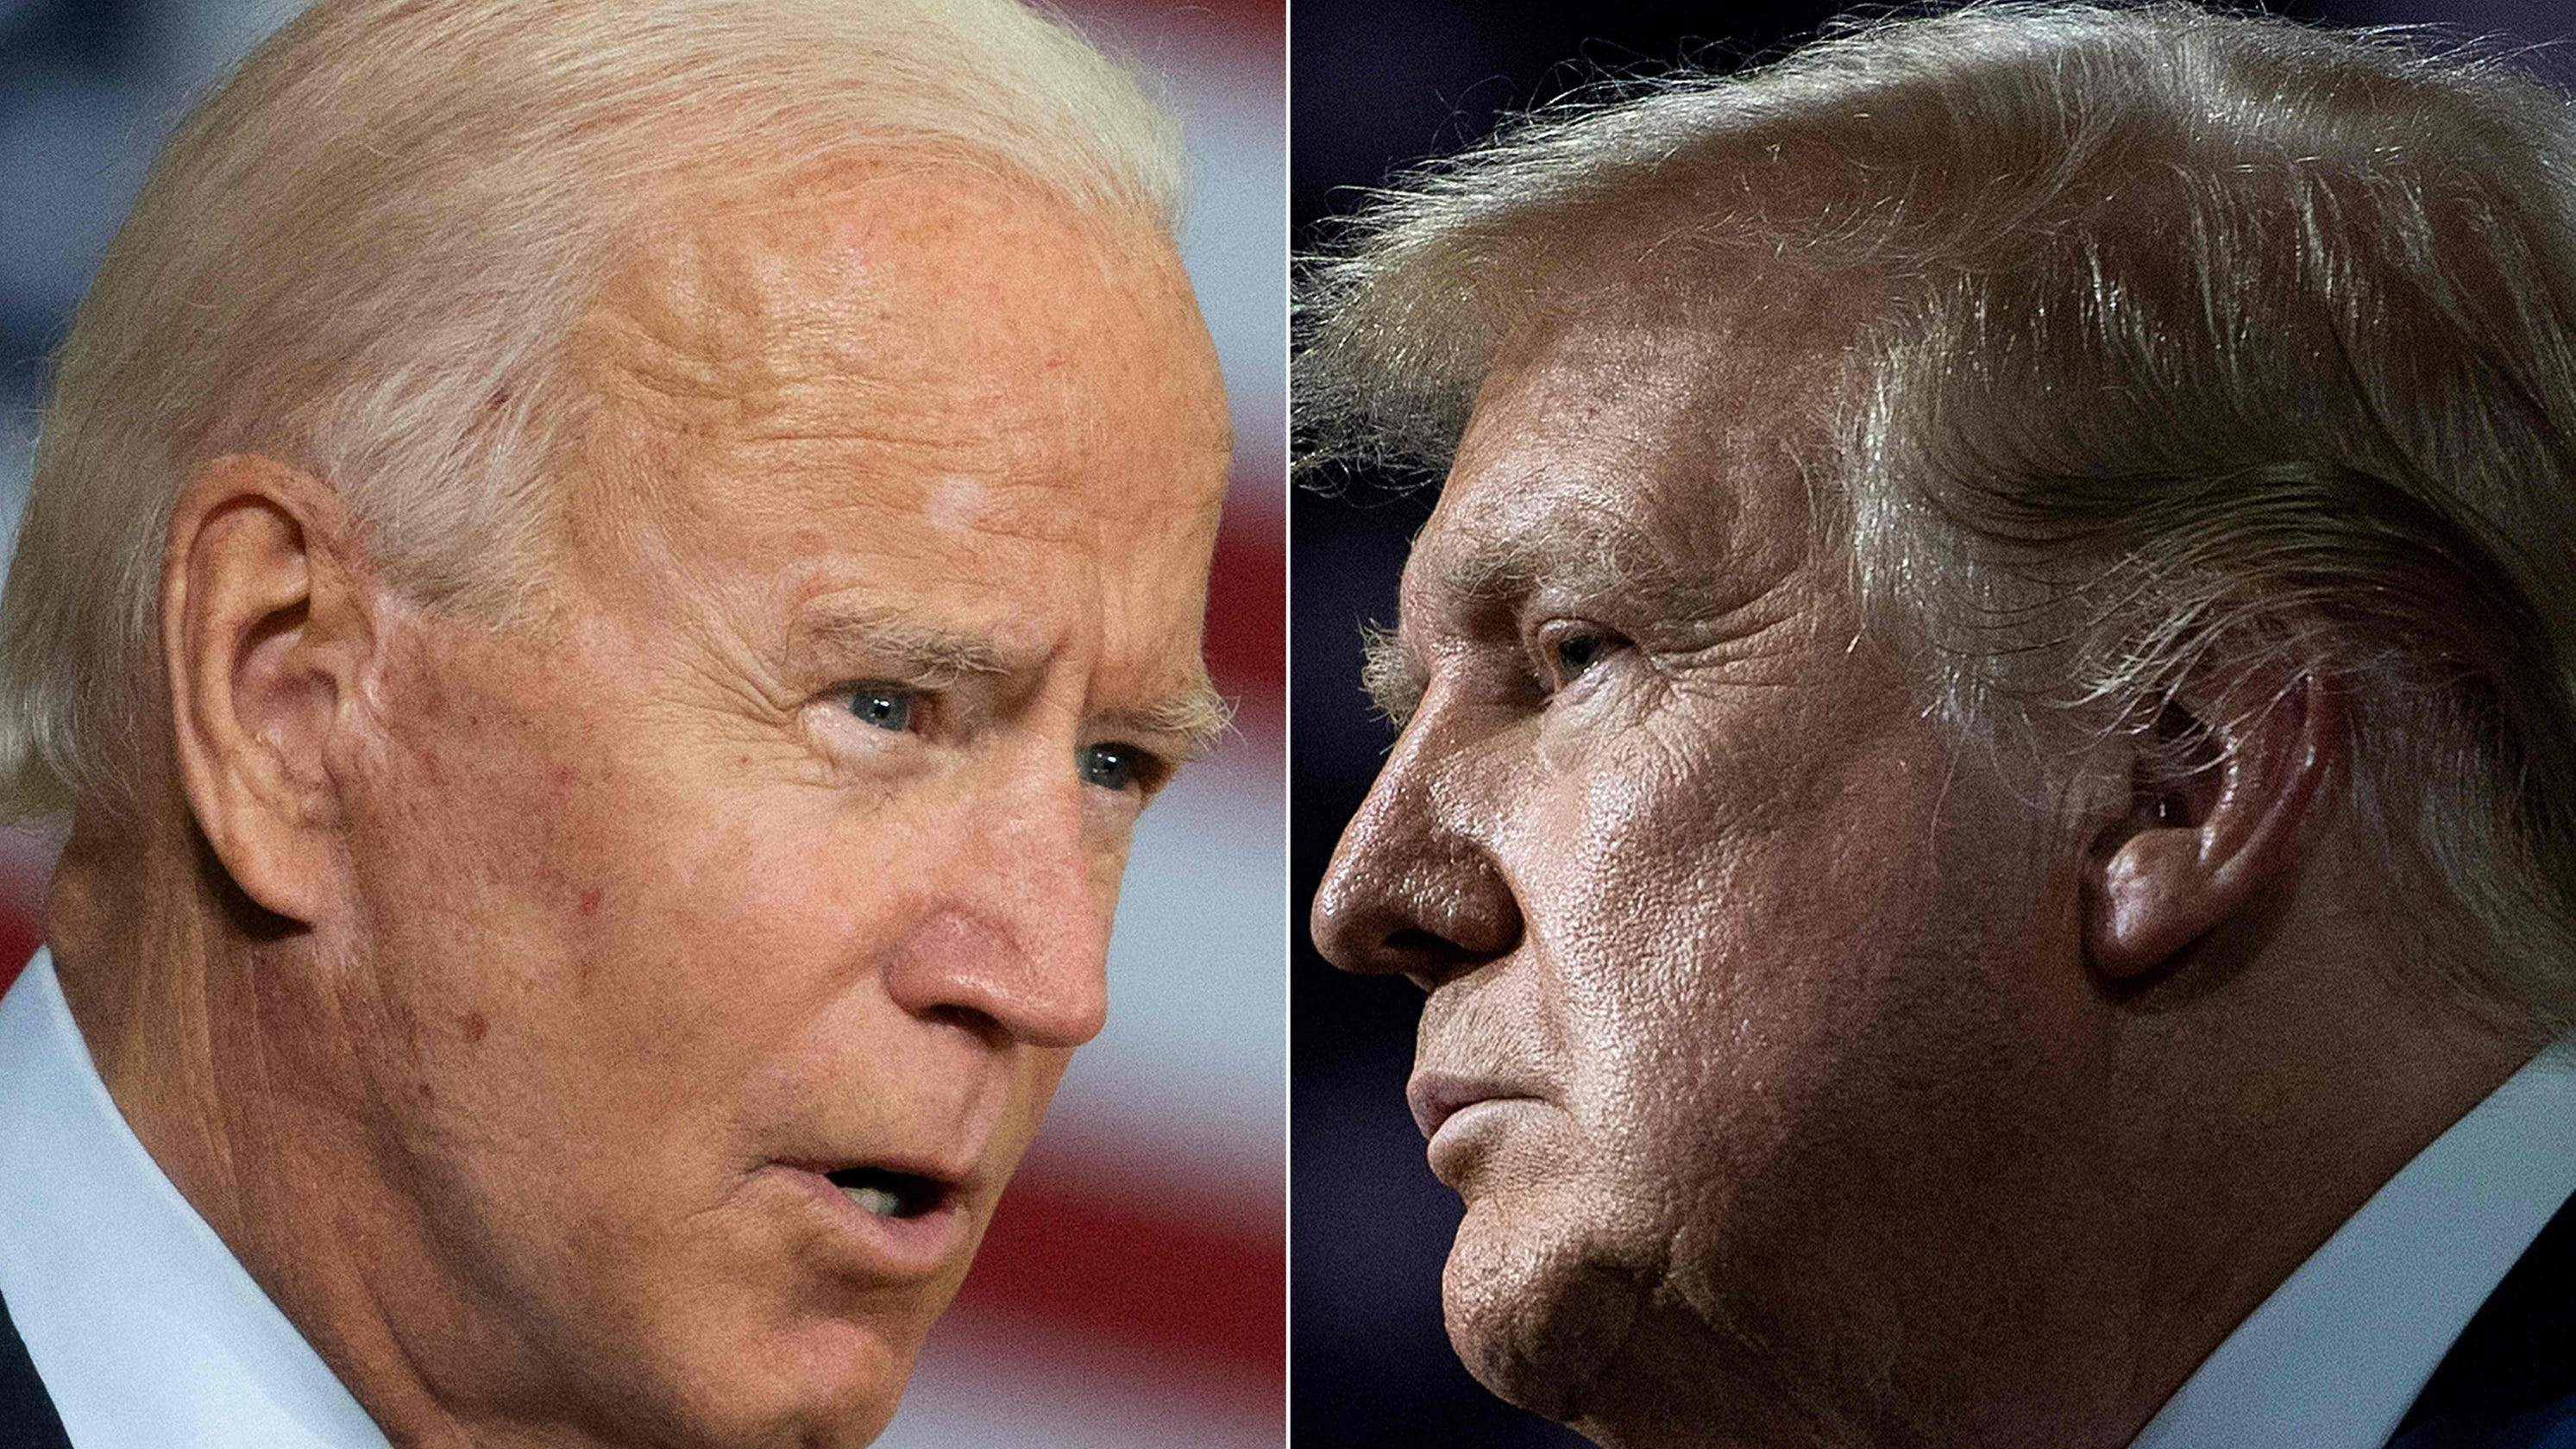 Biden campaign blasts Facebook over Trump posts, voting misinformation